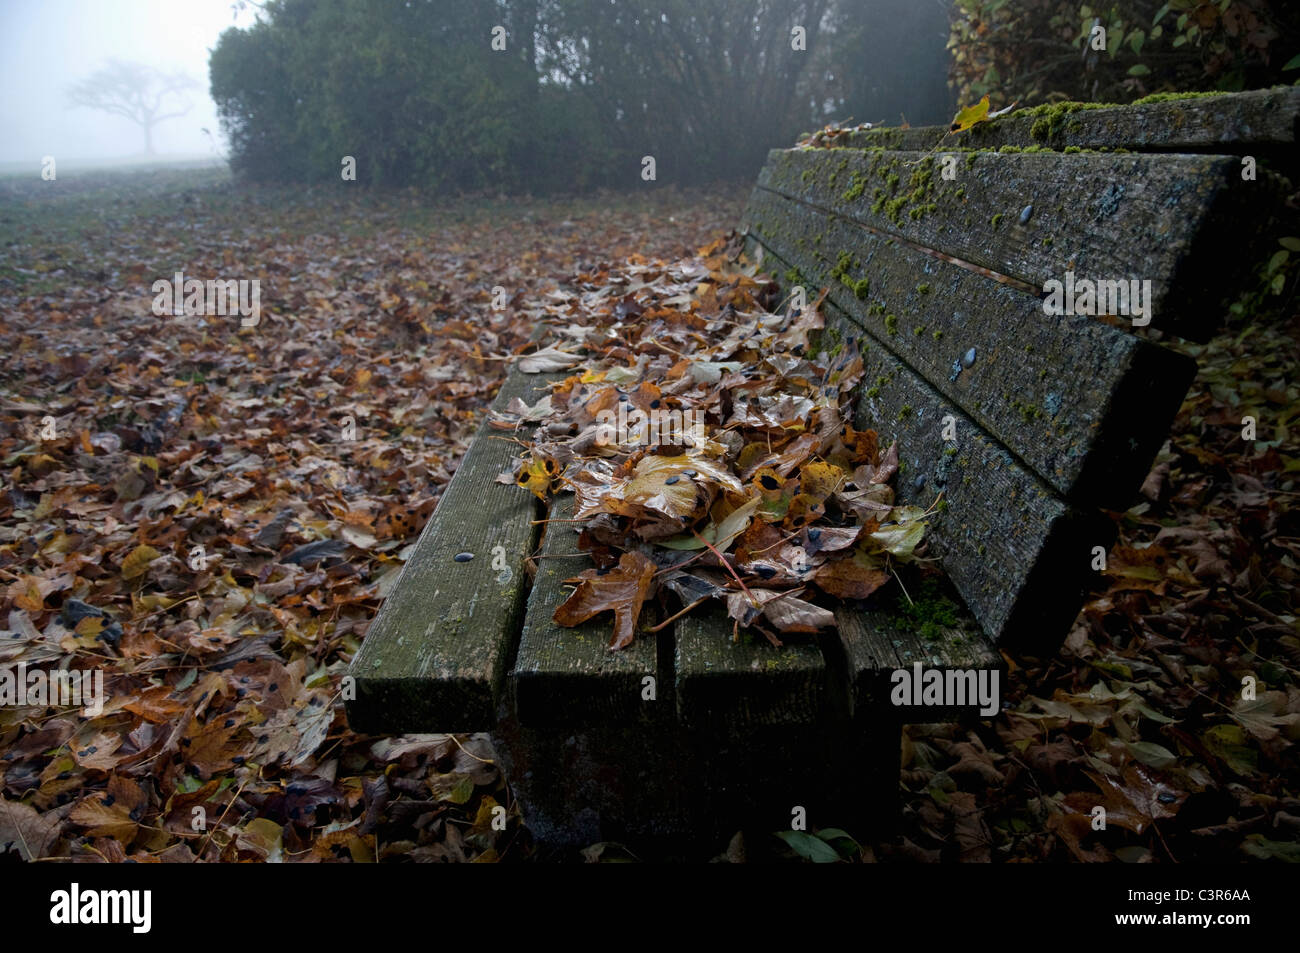 Germany, Bavaria, View of autumn leafs on bench with morning fog - Stock Image